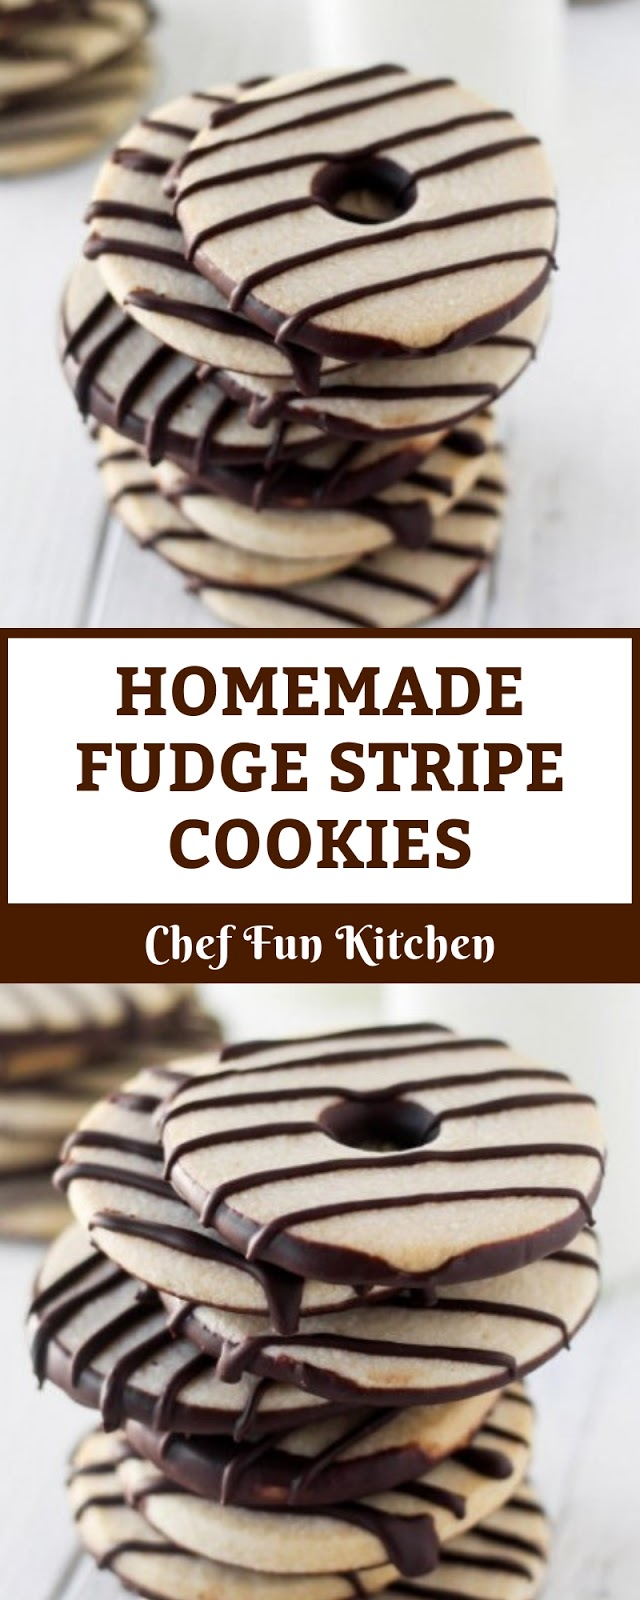 HOMEMADE FUDGE STRIPE COOKIES